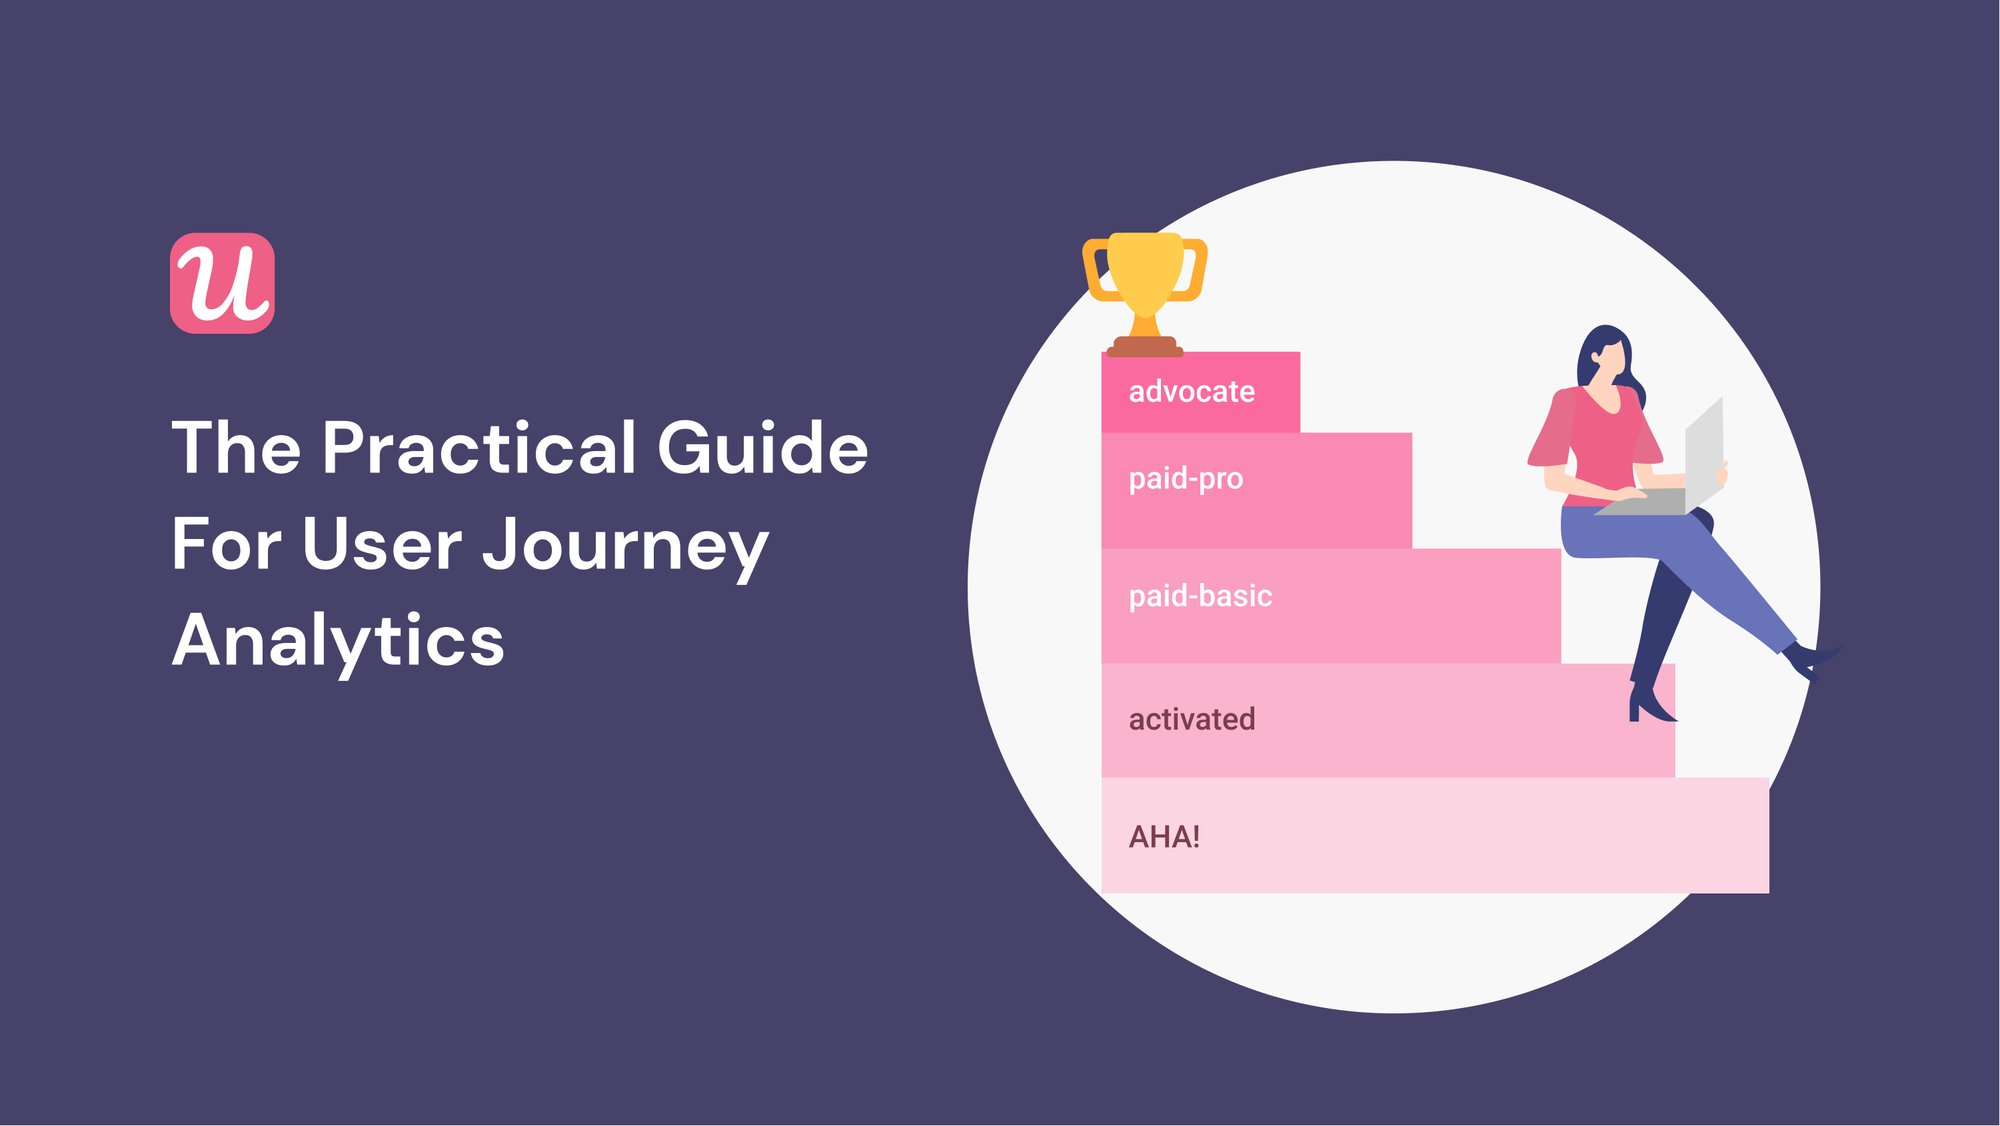 User Journey Analytics: The Practical Guide. Use Cases To Drive Growth